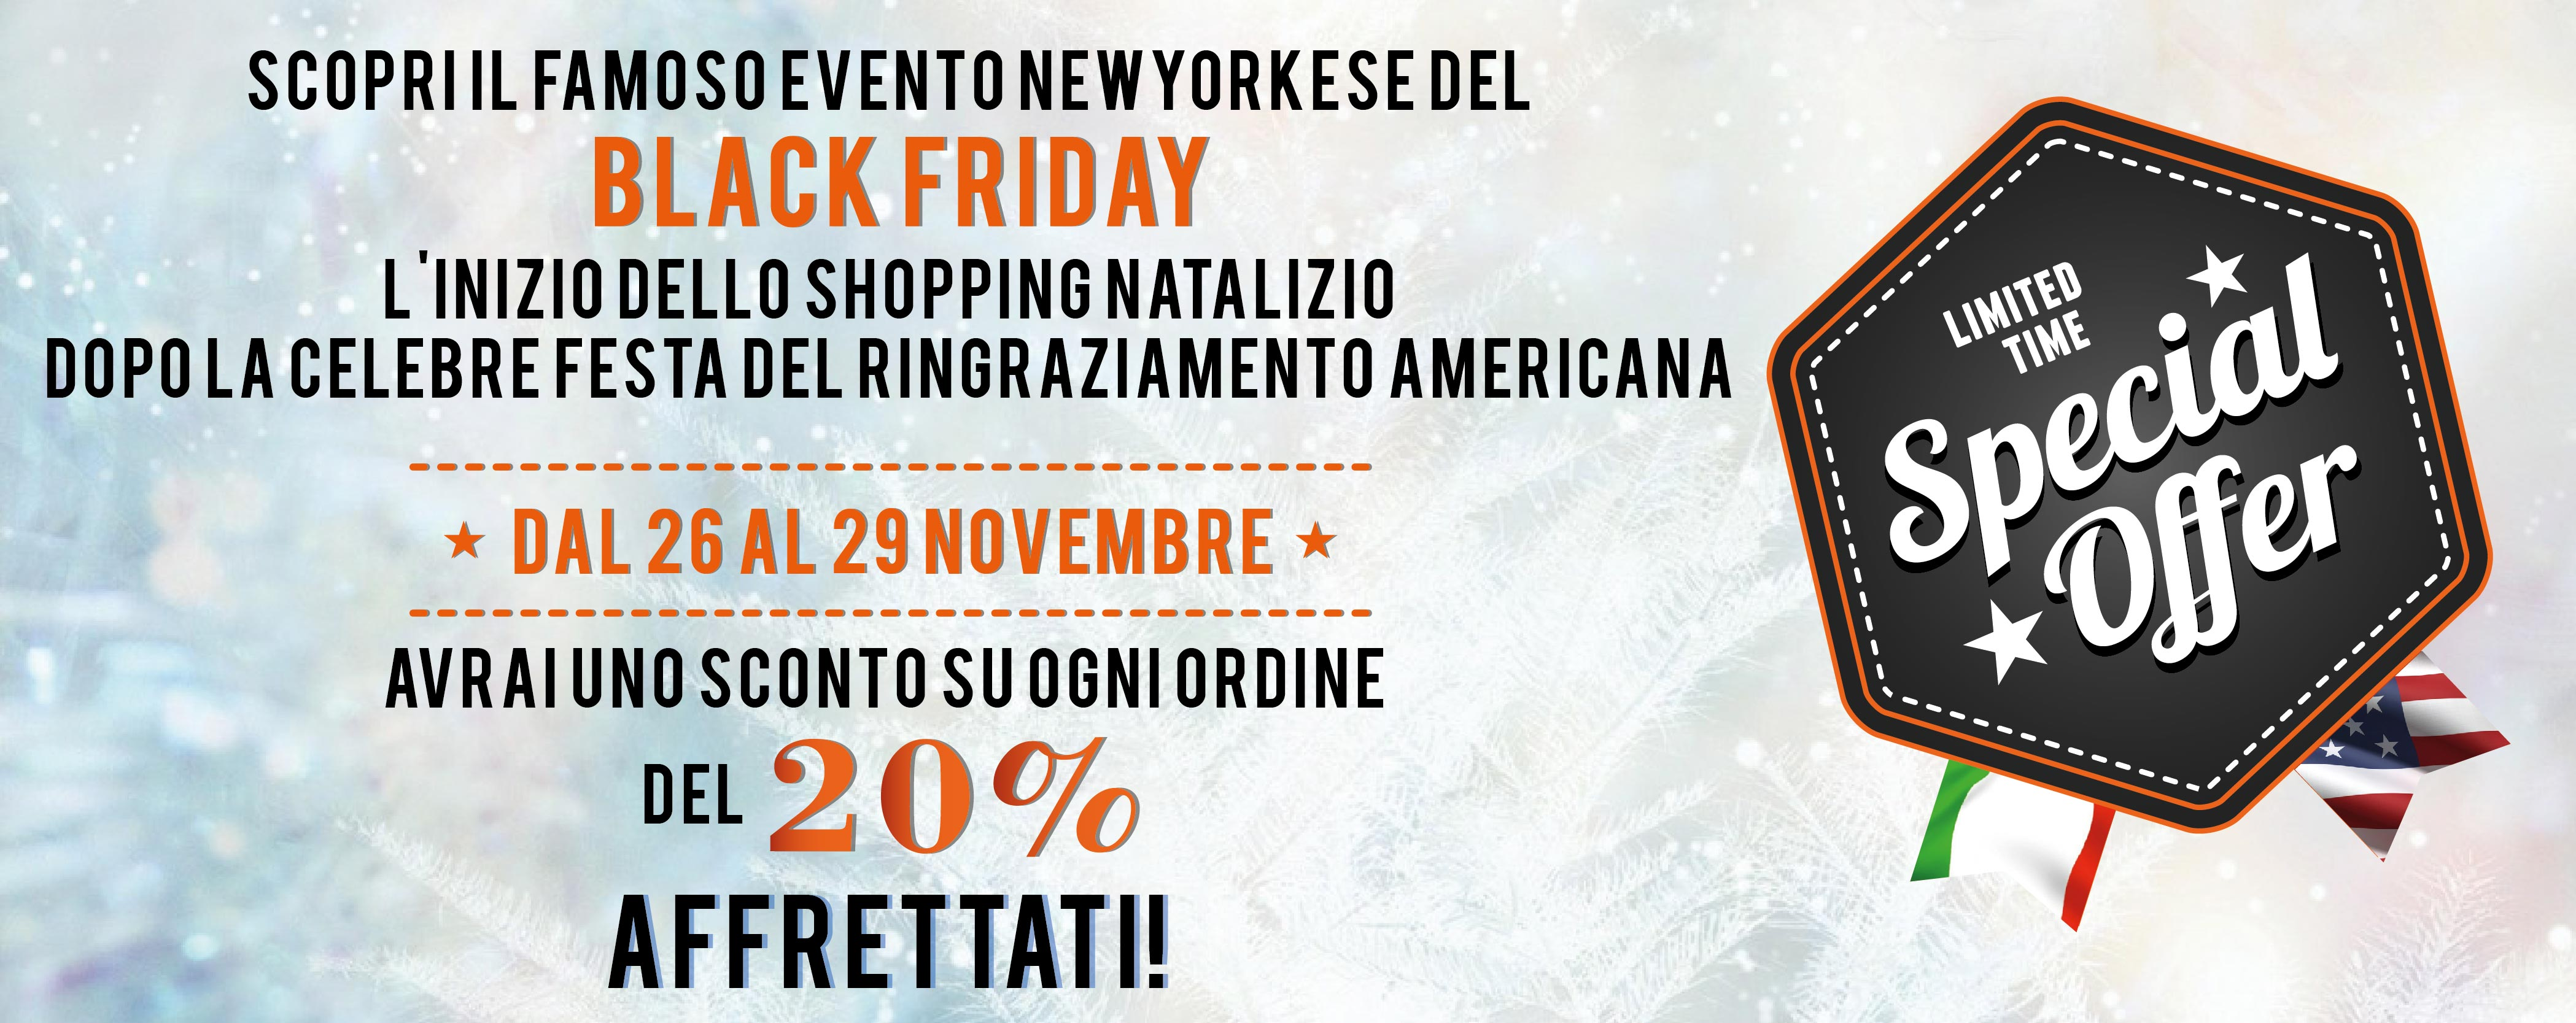 black friday-01